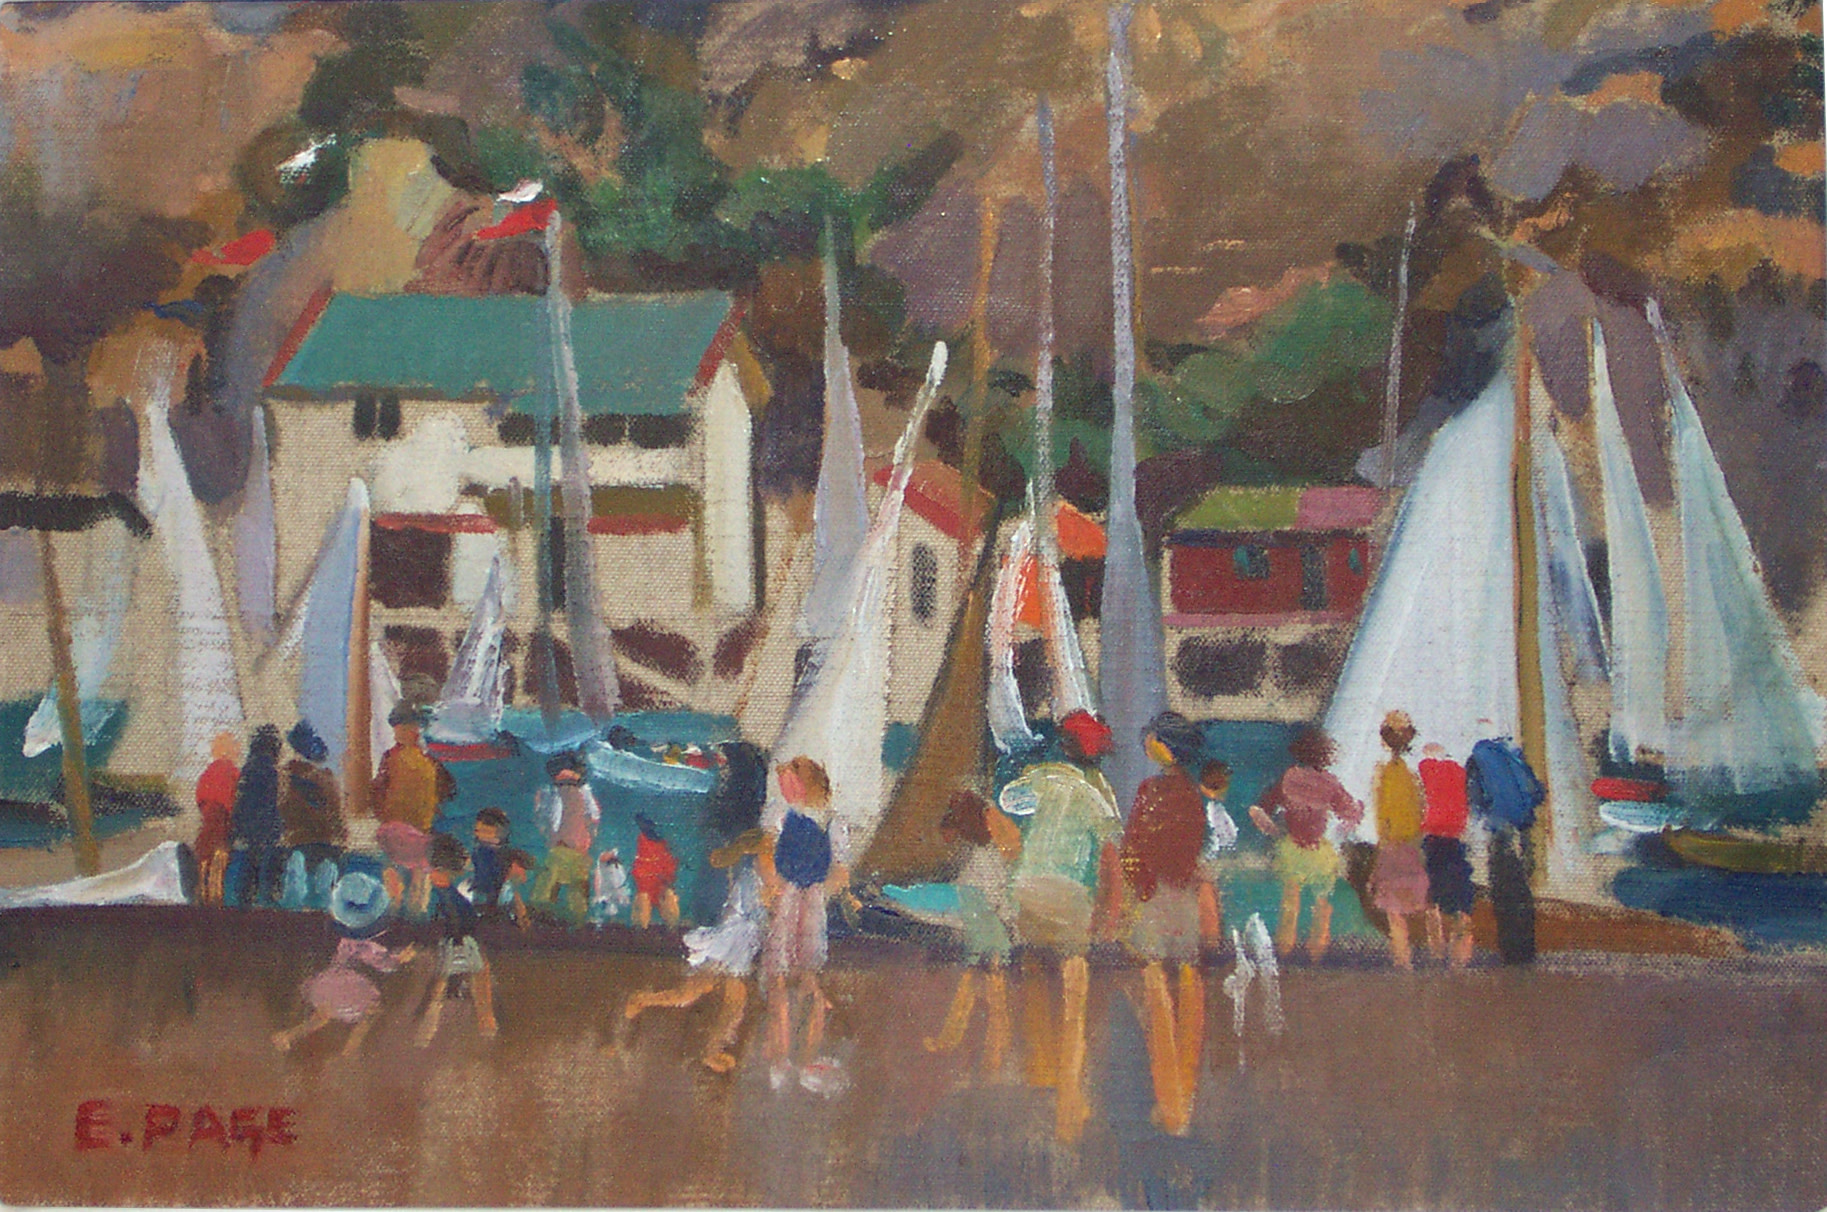 <span class=&#34;link fancybox-details-link&#34;><a href=&#34;/artists/80-evelyn-page/works/1376-evelyn-page-yachting-paremata-c.-1947/&#34;>View Detail Page</a></span><div class=&#34;artist&#34;><strong>Evelyn Page</strong></div> <div class=&#34;title&#34;><em>Yachting, Paremata</em>, c. 1947</div> <div class=&#34;signed_and_dated&#34;>Signed lower left</div> <div class=&#34;medium&#34;>Oil on canvas laid onto board</div> <div class=&#34;dimensions&#34;>9.8 x 14.4 in<br />25 x 36.5 cm</div>